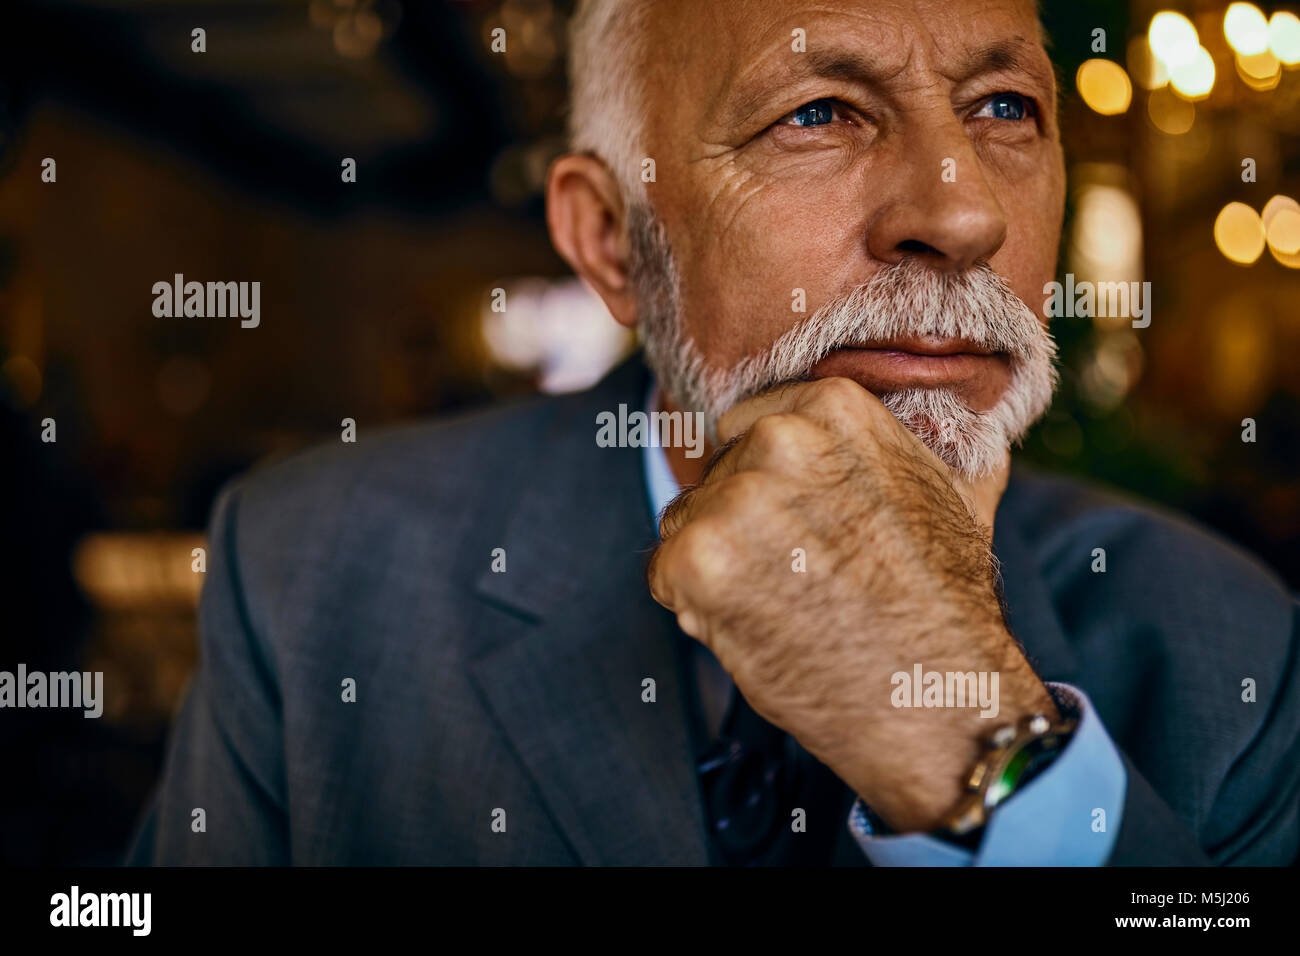 Portrait of elegant senior man thinking - Stock Image